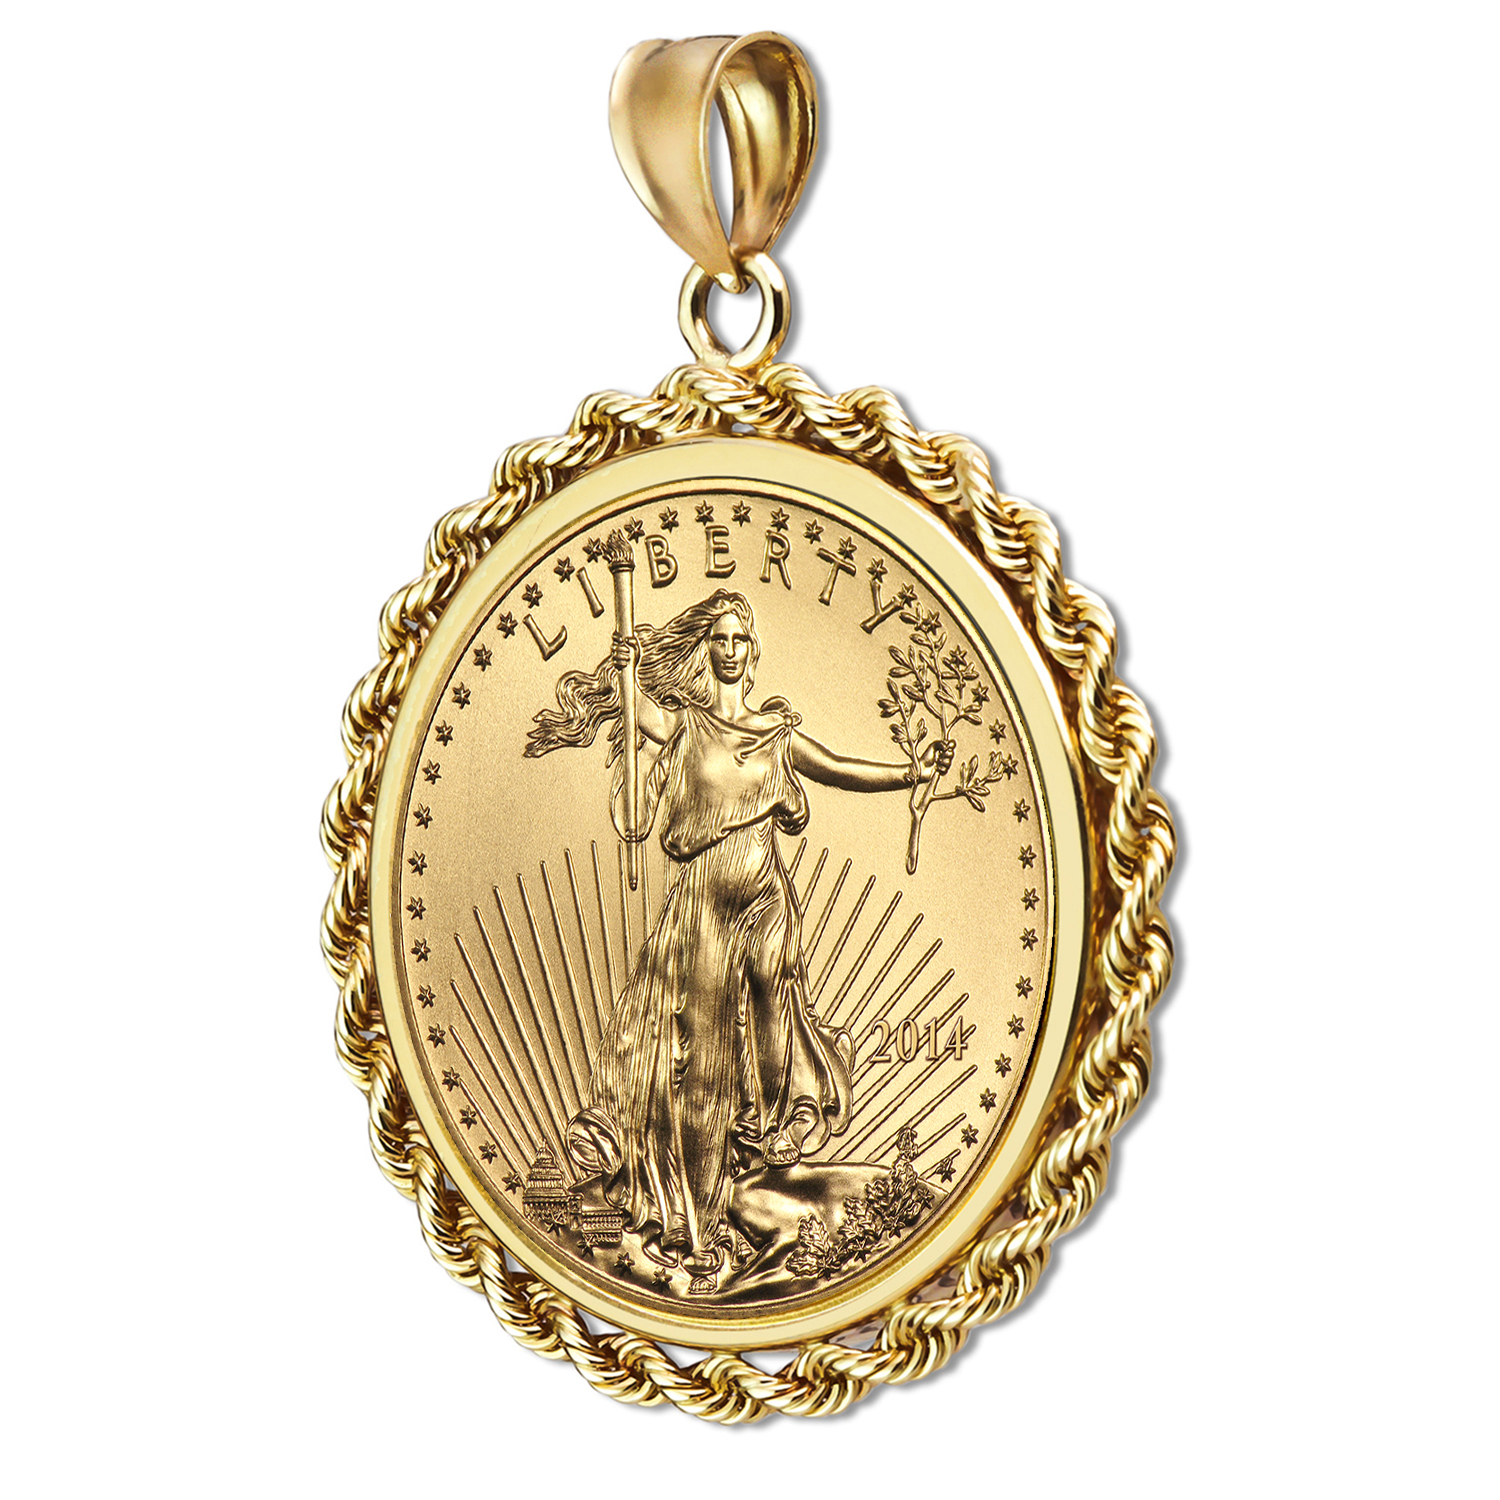 2014 1/2 oz Gold Eagle Pendant (Rope-Prong Bezel)